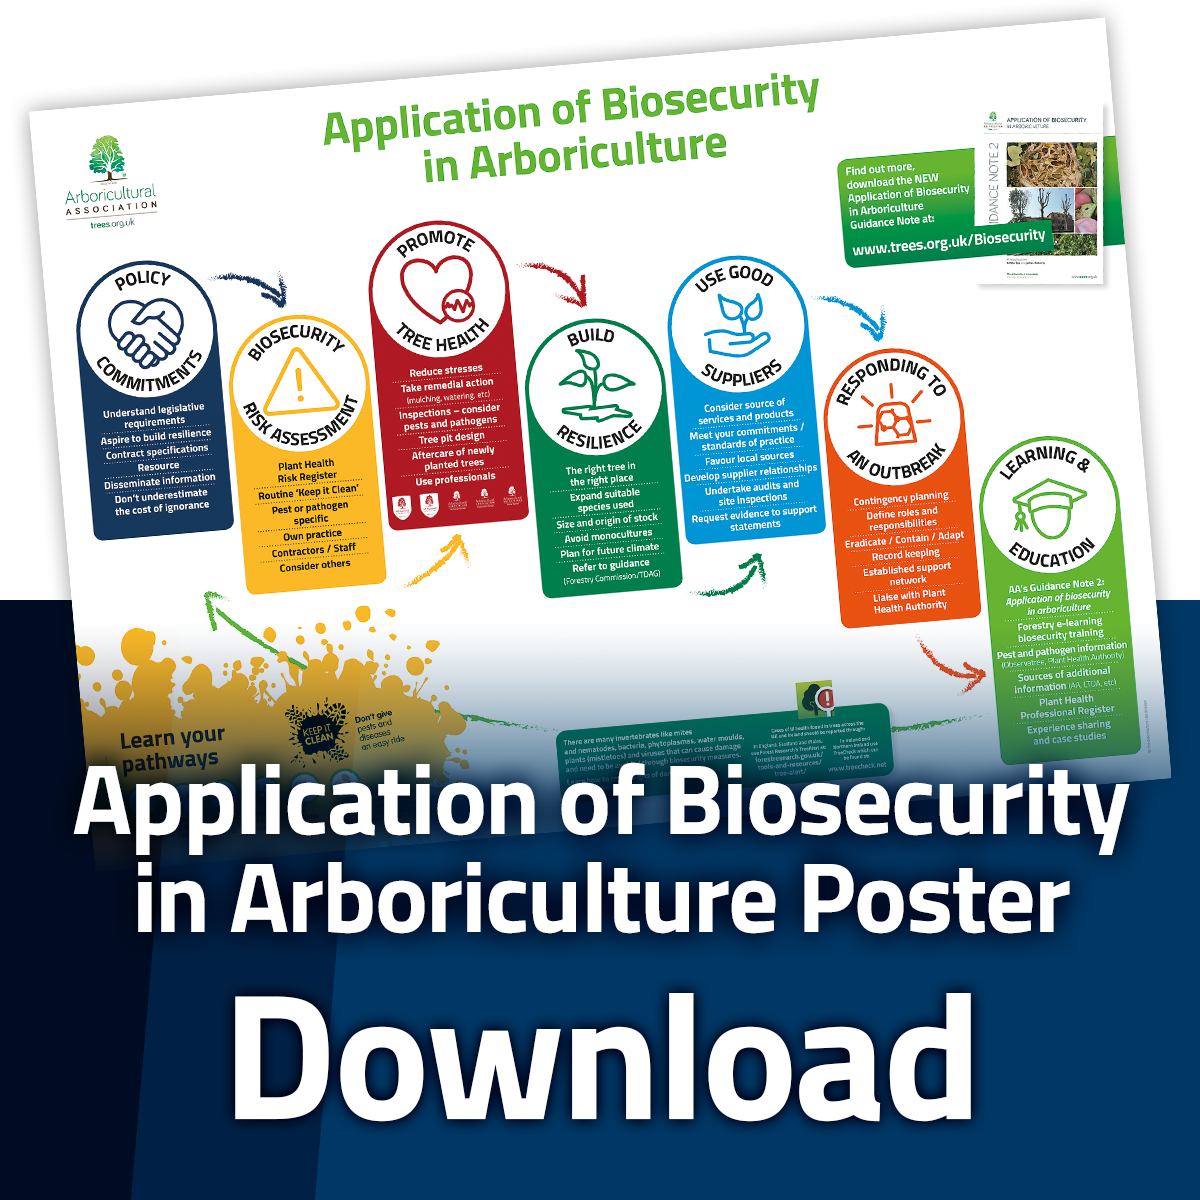 Download the Application of Biosecurity in Arboriculture Poster